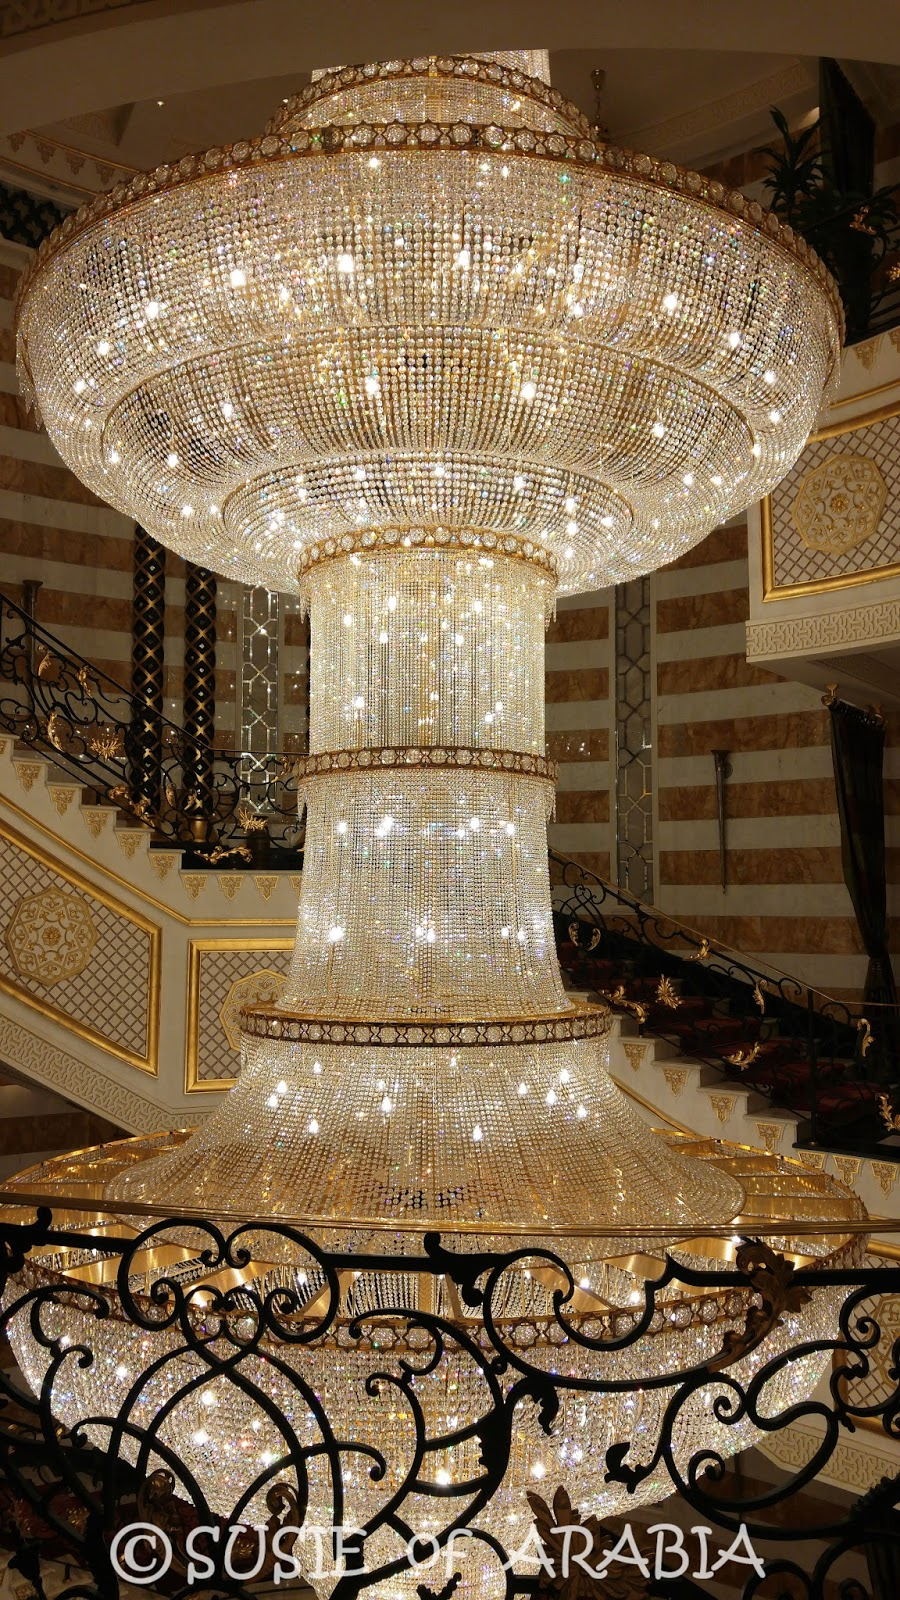 Jeddah daily photo jeddah waldorf astoria chandeliers this hotel has the biggest crystal chandelier i have ever seen which extends three stories and is surrounded by a staircase the photos just dont do it aloadofball Gallery